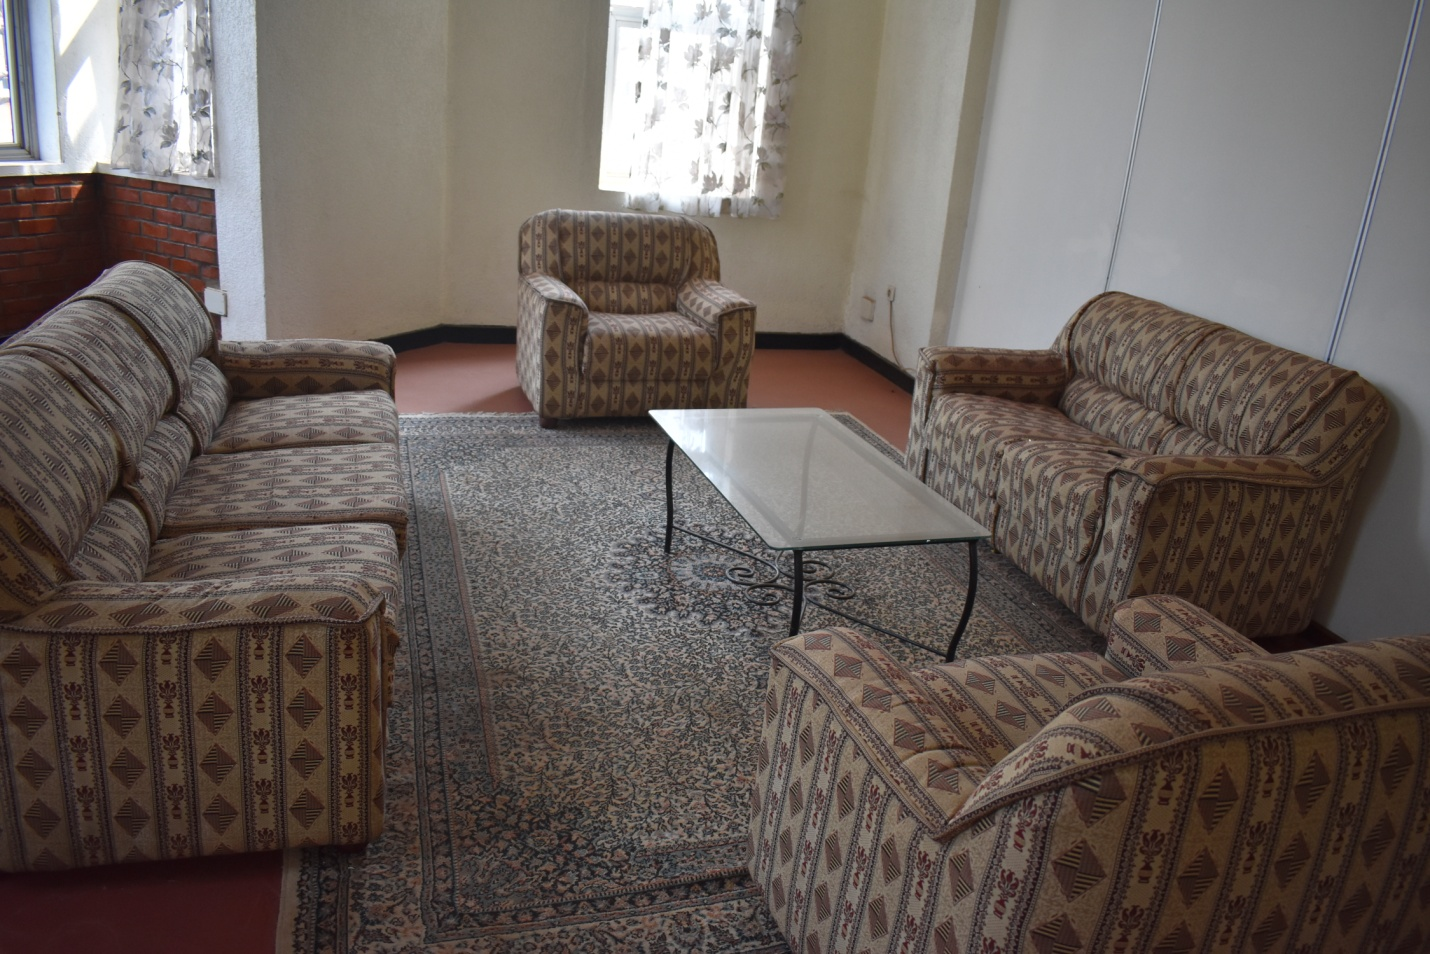 Evacuation room equipped with sofa